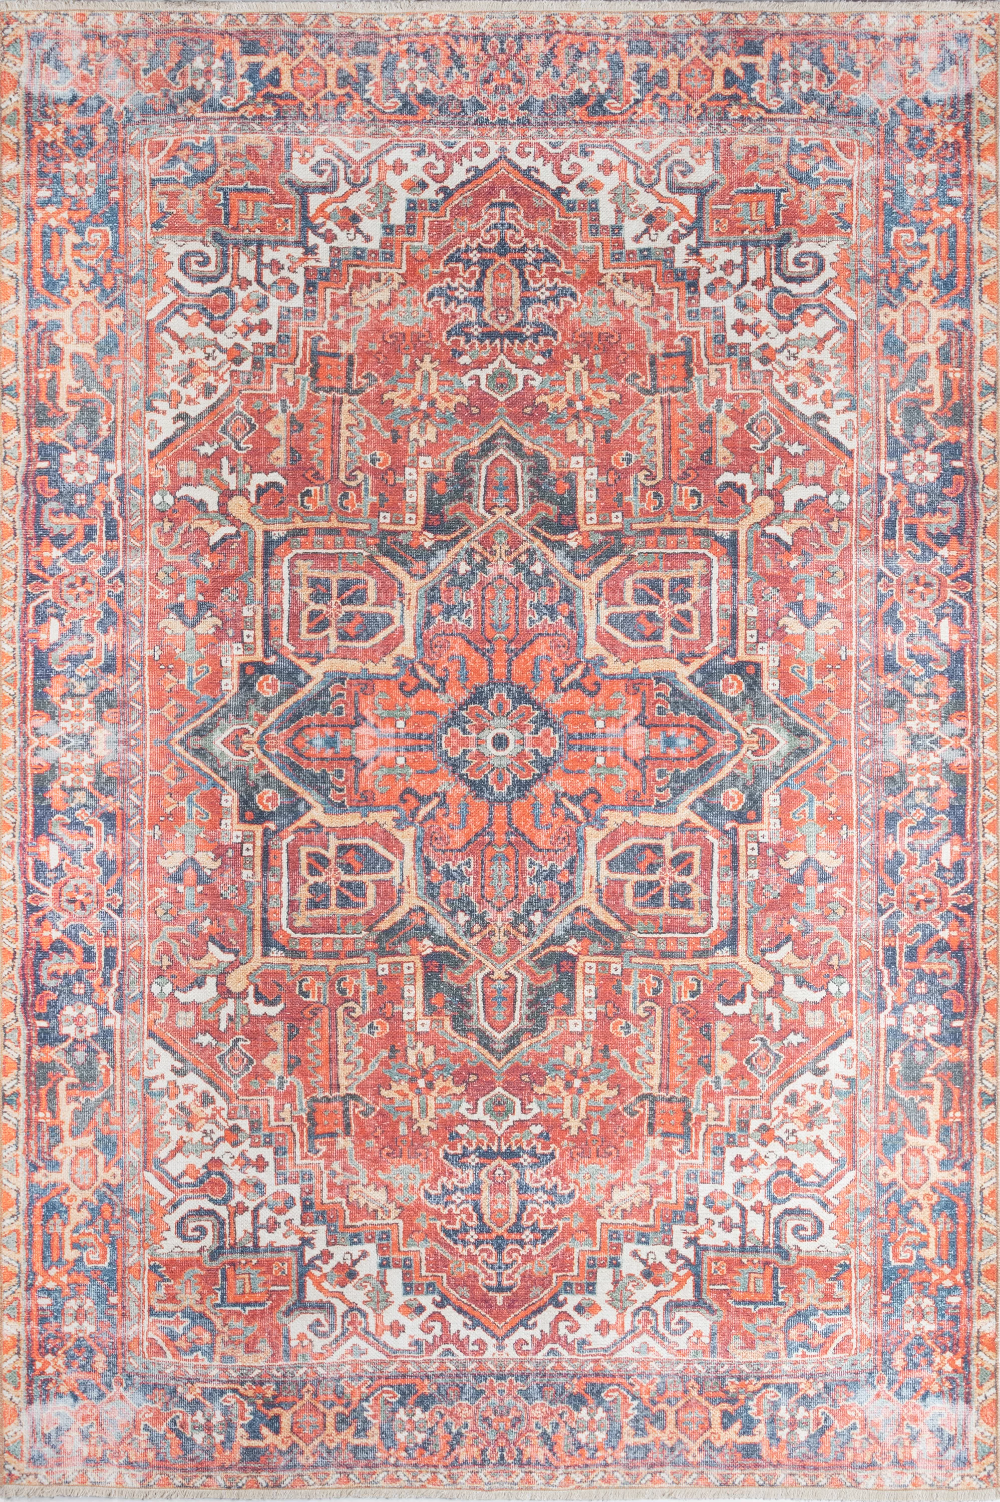 Losoto Oriental Red Blue Area Rug Colorful Rugs Red Rugs Boho Rug